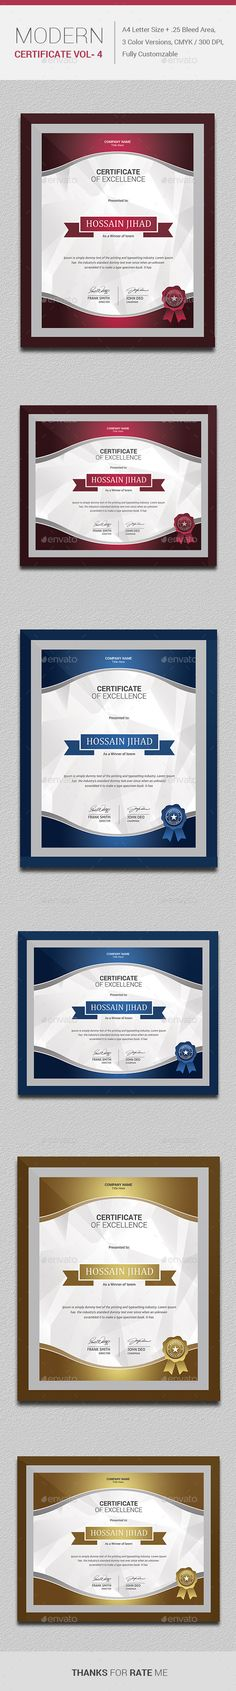 #MODERN Certificate VOL- 4..Download here: http://graphicriver.net/item/modern-certificate-vol-4/10783581?ref=arroganttype